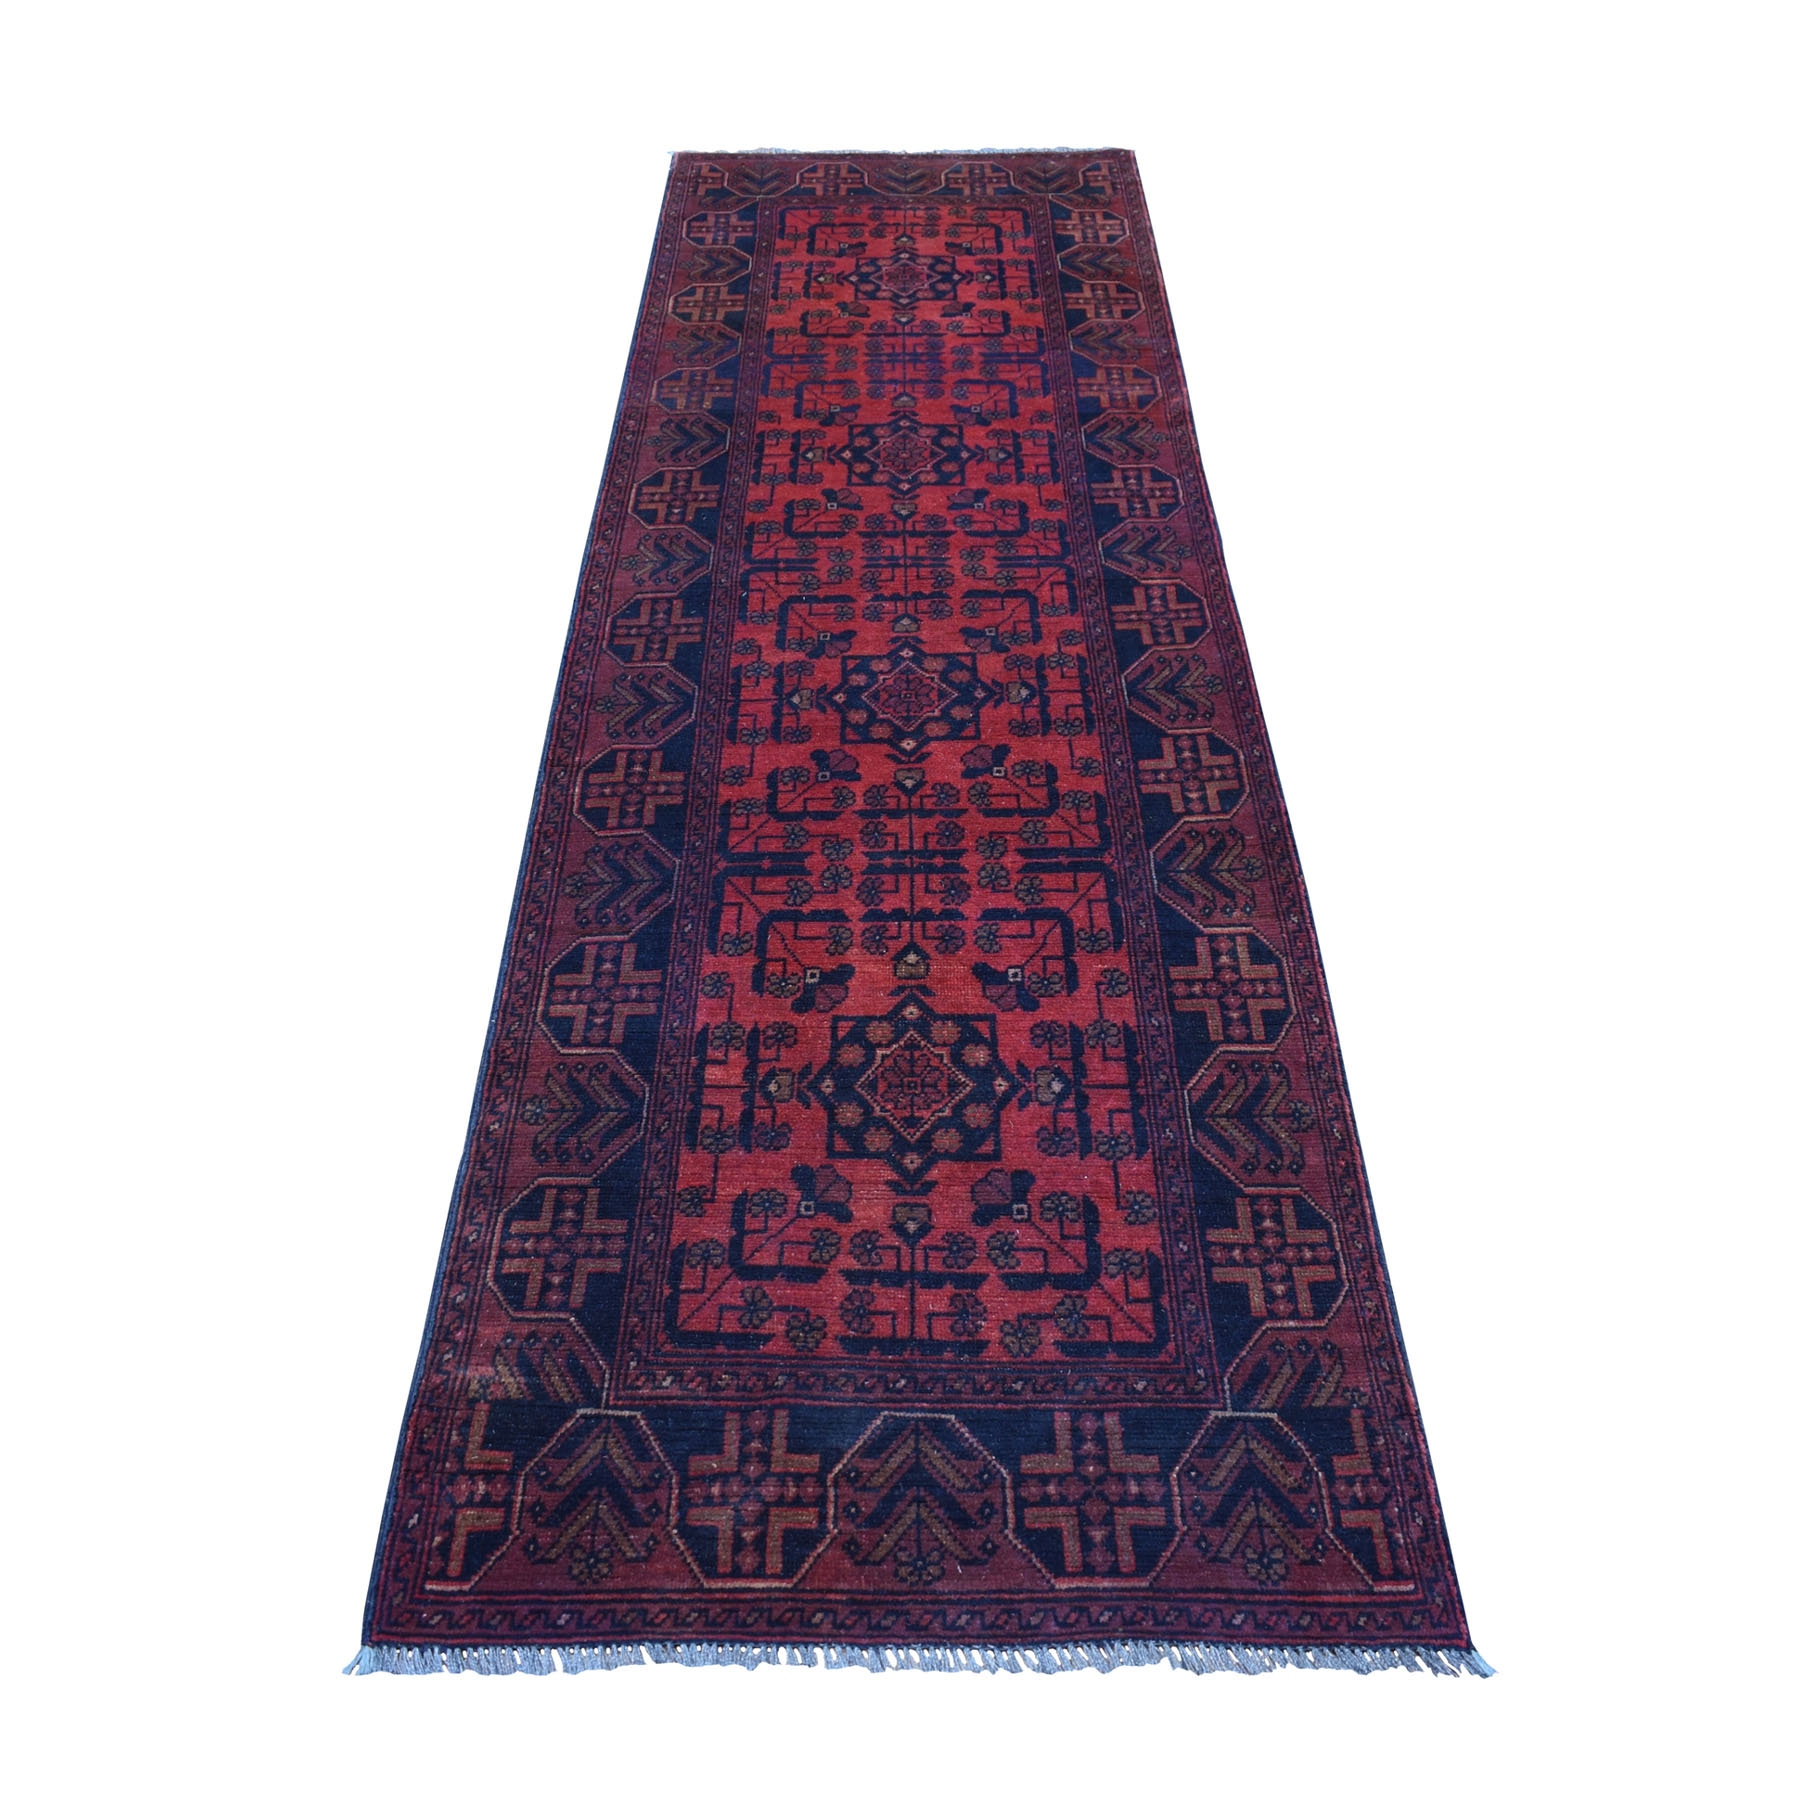 """2'9""""x9' Deep and Saturated Red Geometric Afghan Andkhoy Runner Pure Wool Hand Knotted Oriental Rug"""